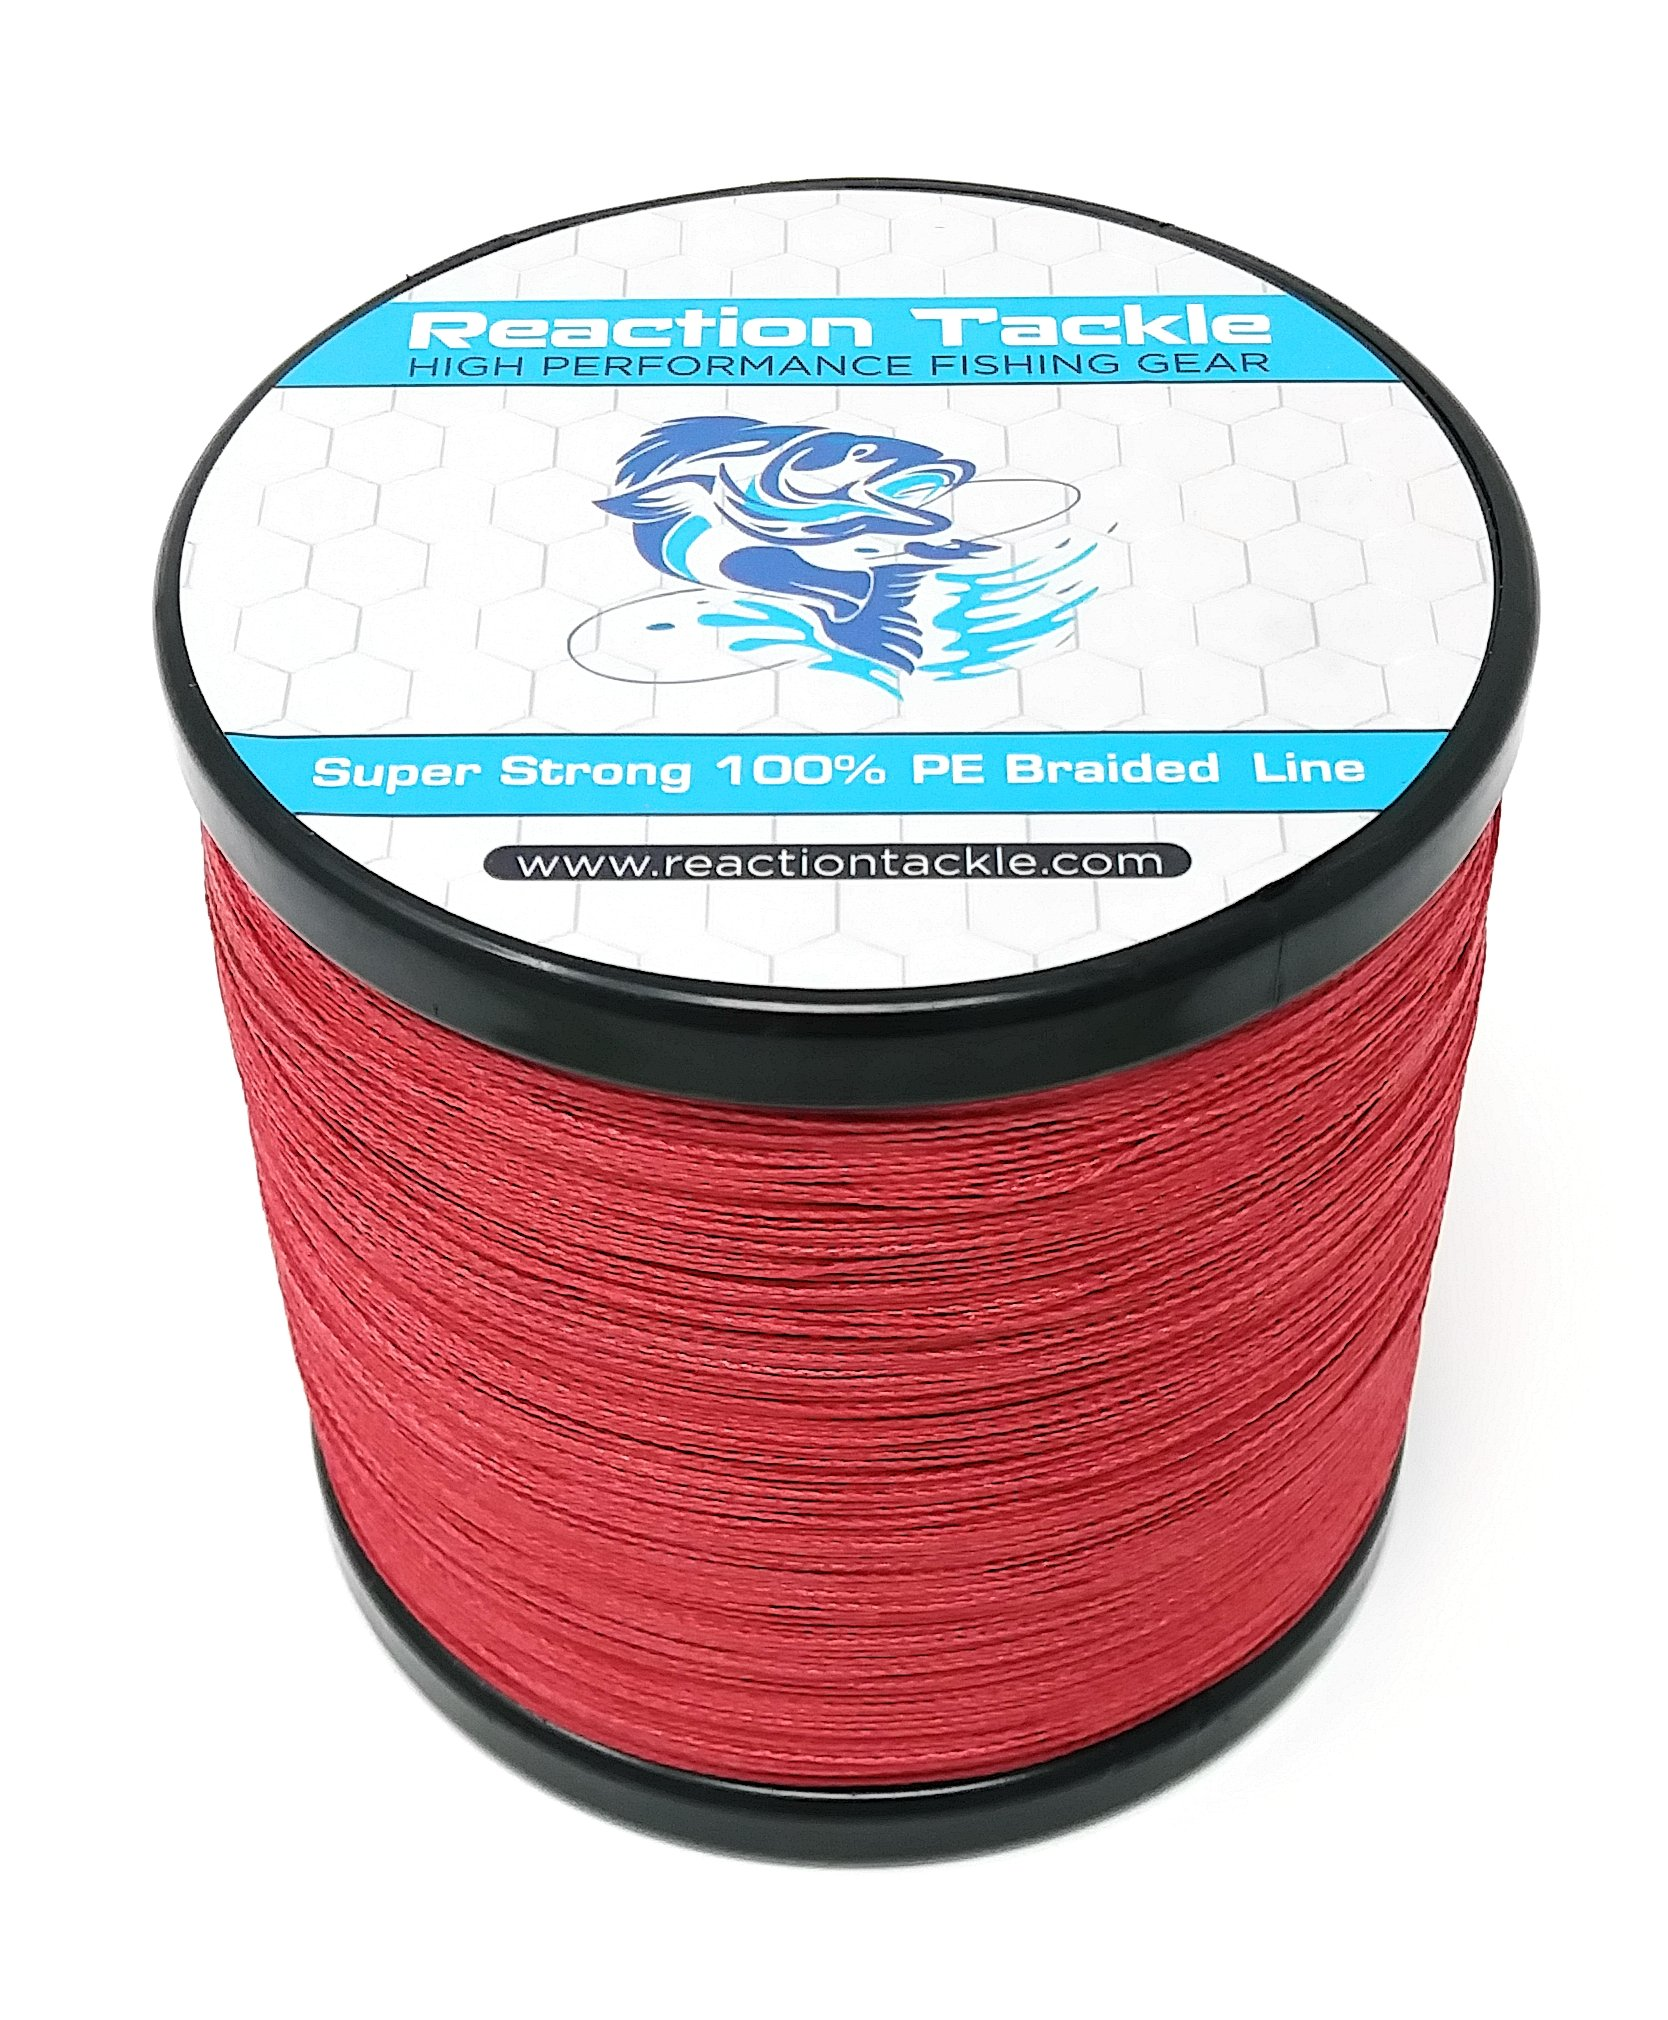 Reaction Tackle Braided Fishing Line Dark Red 50lb 1500yd Walmart Com